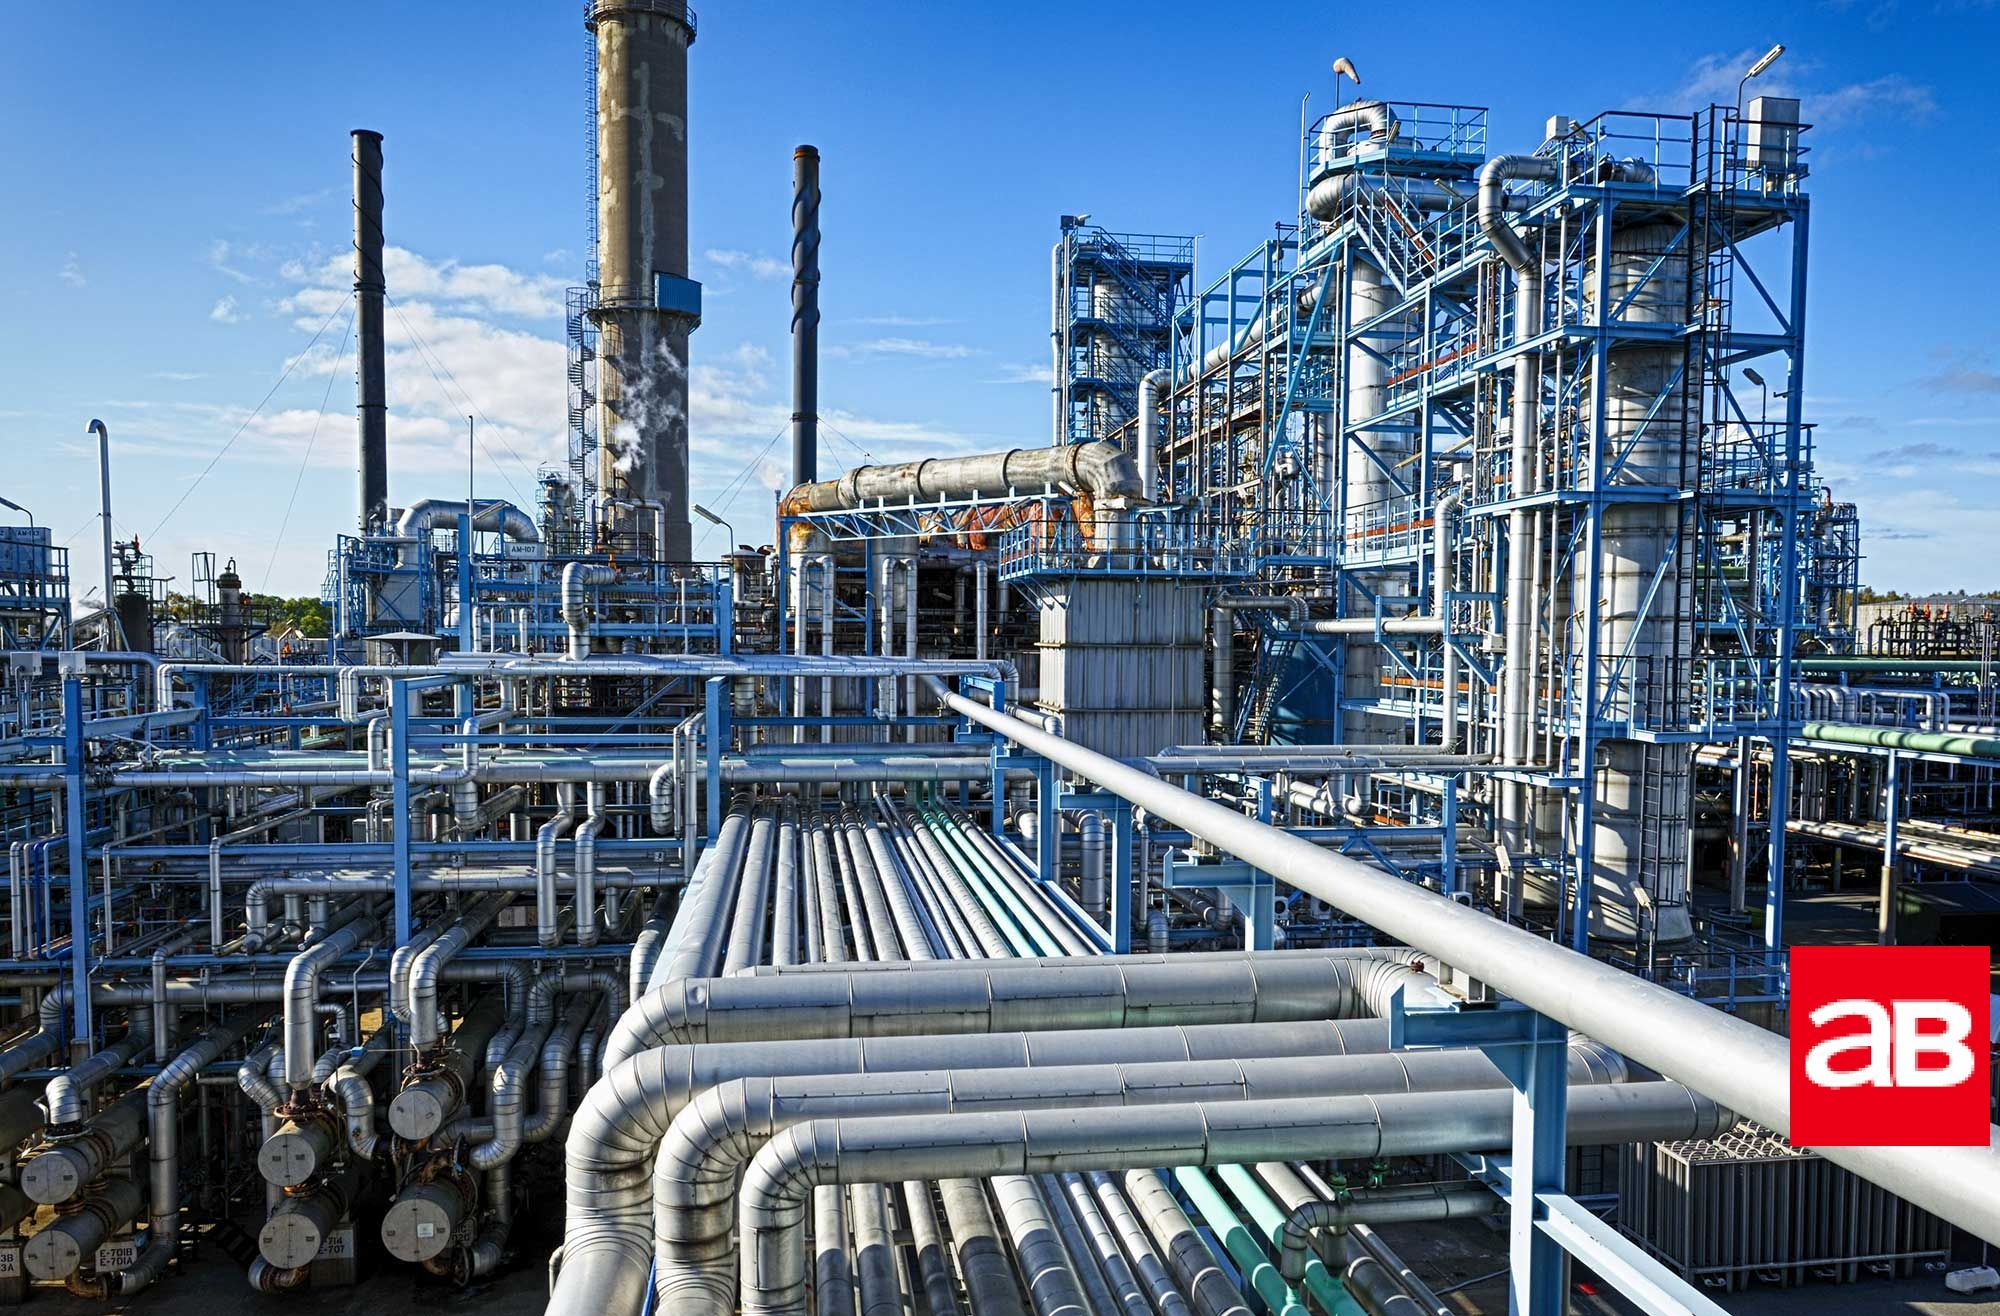 Saudi Aramco's accounts show $2trn valuation unlikely to stack up